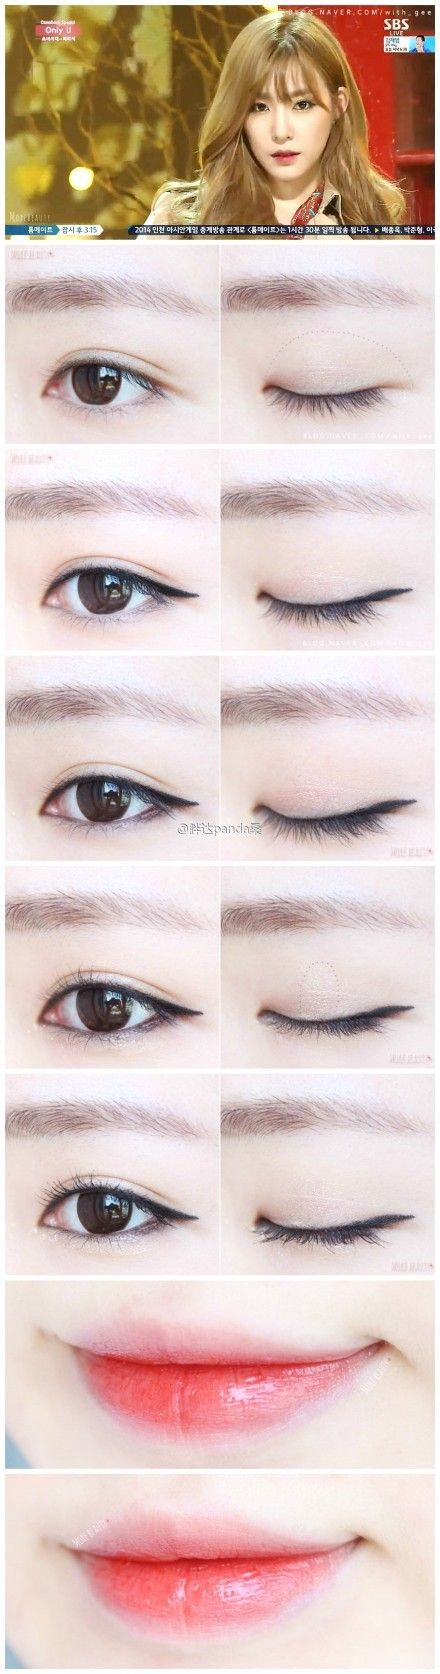 Korean make up #songofcouples #koreanmakeup